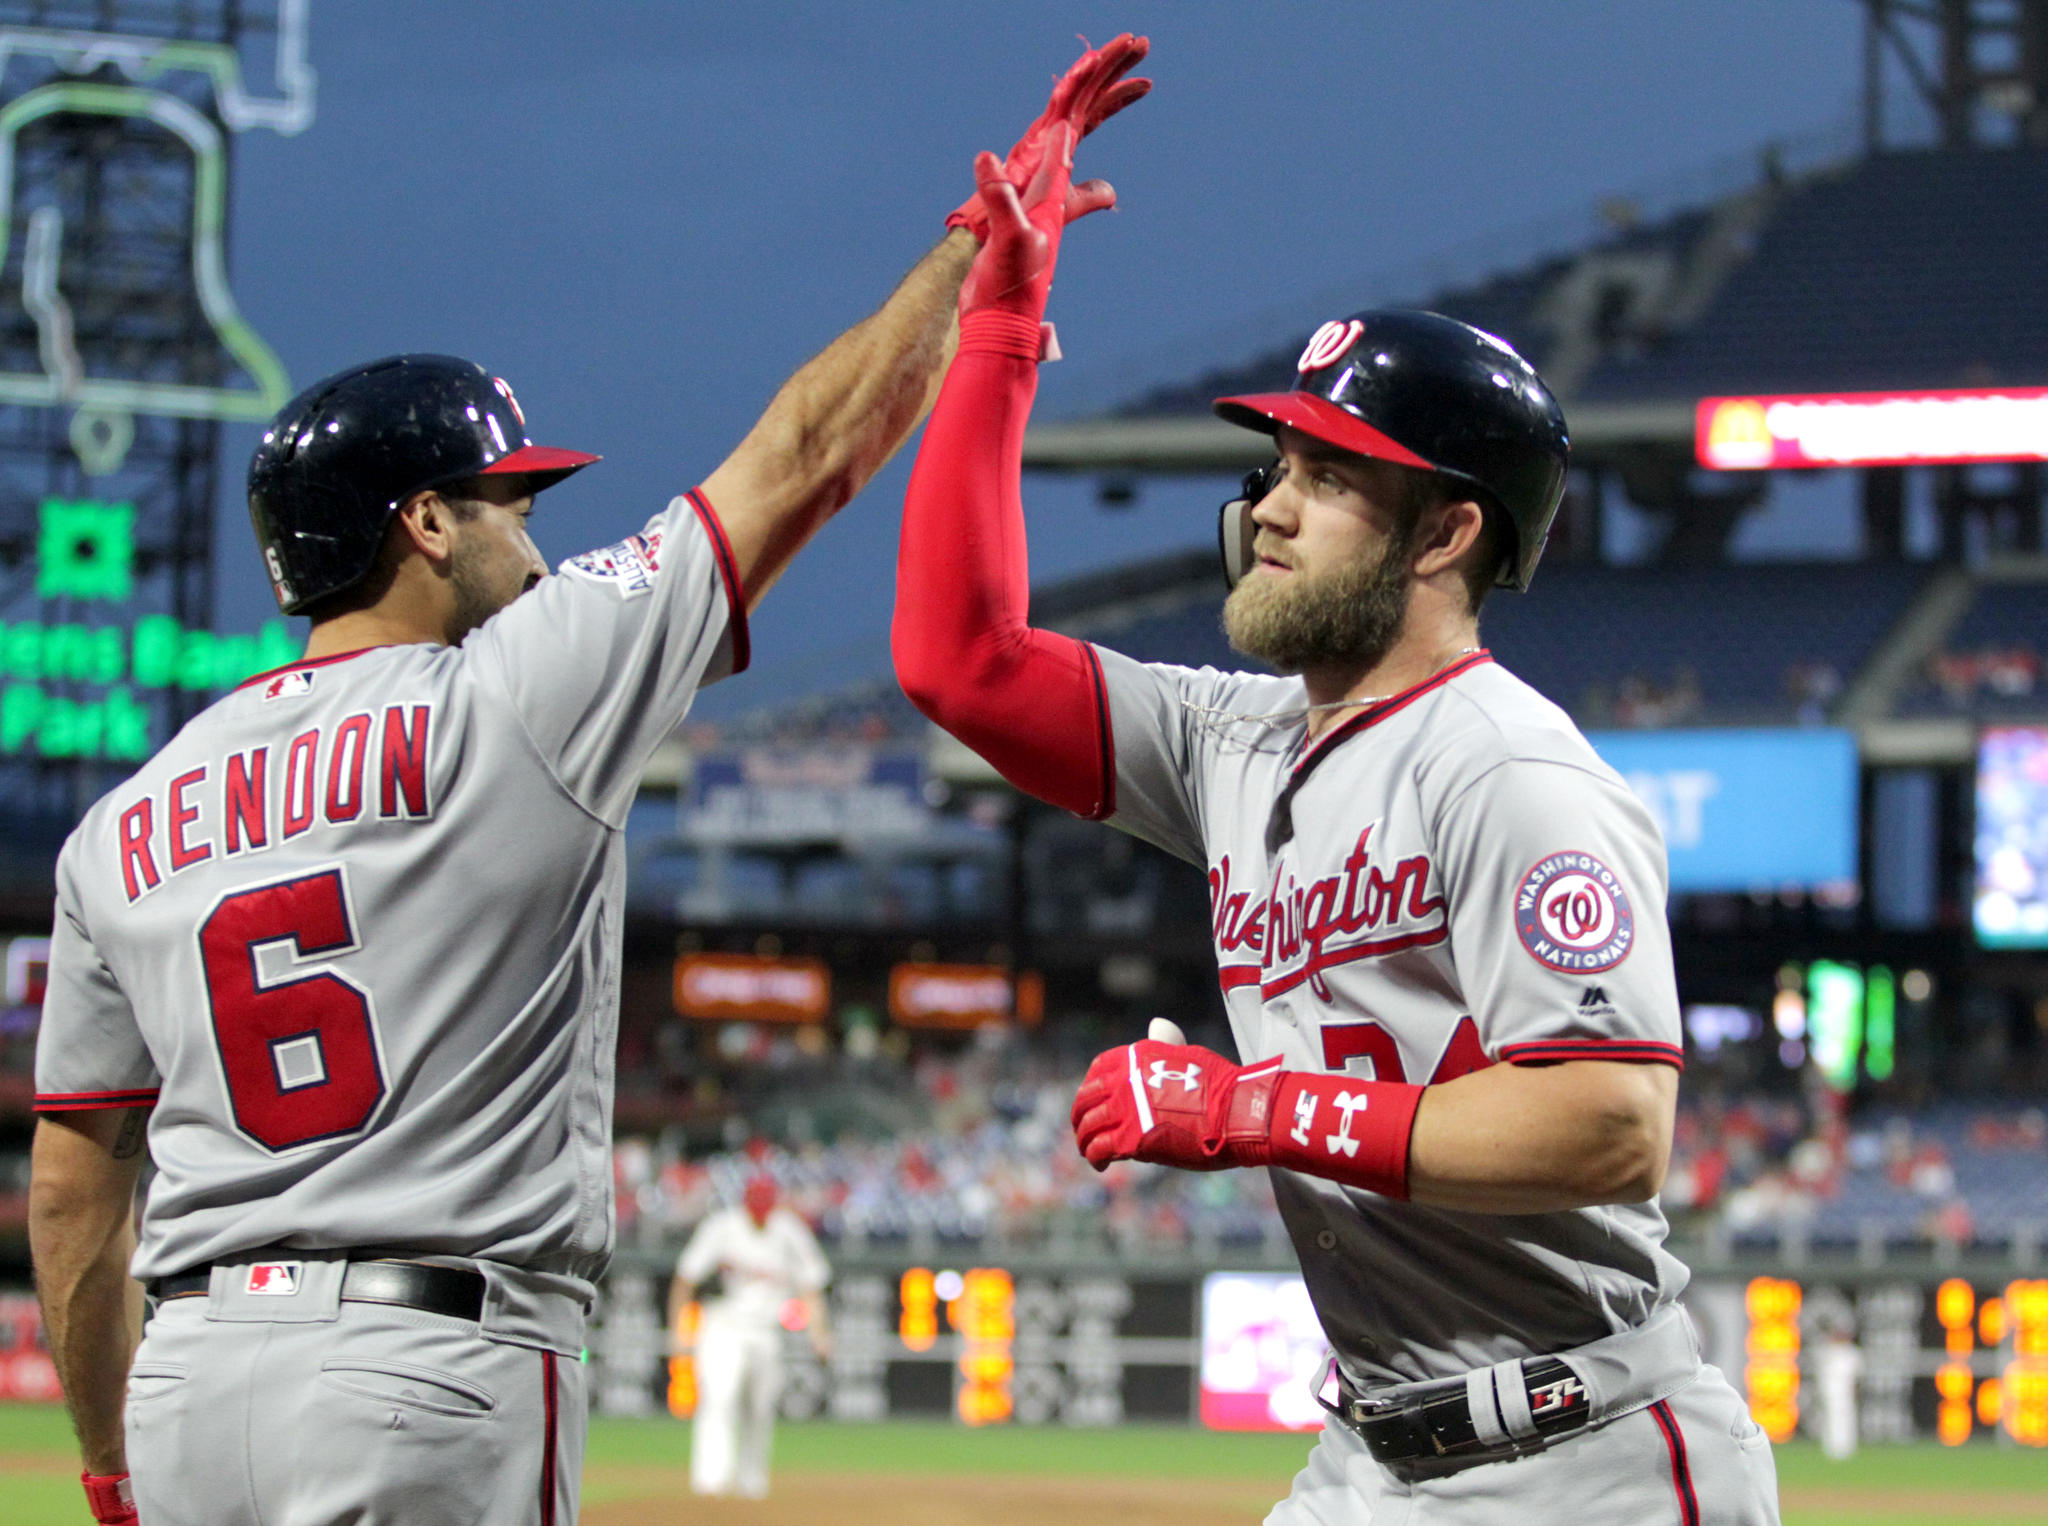 Bryce Harper, right, of the Nationals is congratulated by Anthony Rendon after his 2-run home run in the 1st inning against the Phillies at Citizens Bank Park on Sept. 12, 2018.